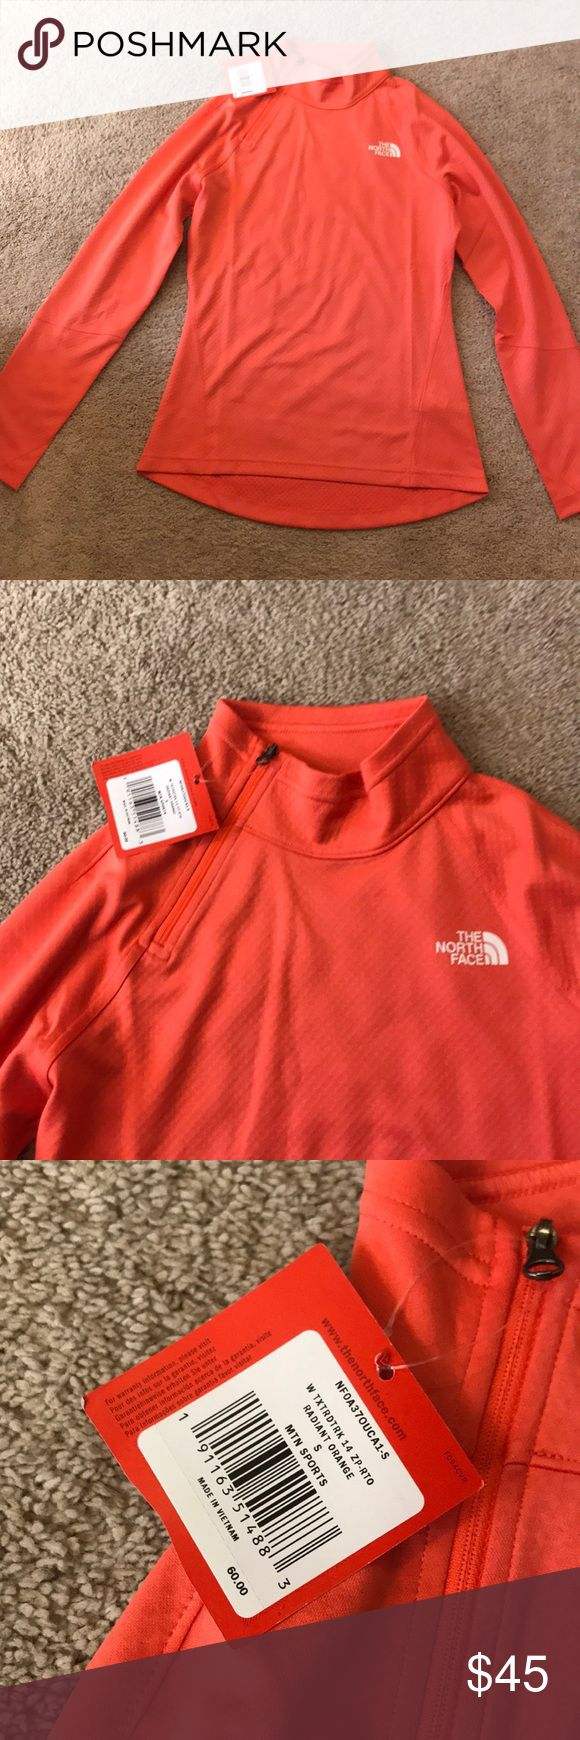 NWT north face neon orange asymmetrical 1/4 zip NWT flash dry women's cut asymmetrical side neck 1/4 zip bright orange zip up.  Super pretty color! Size small.  Smoke free home. North Face Tops